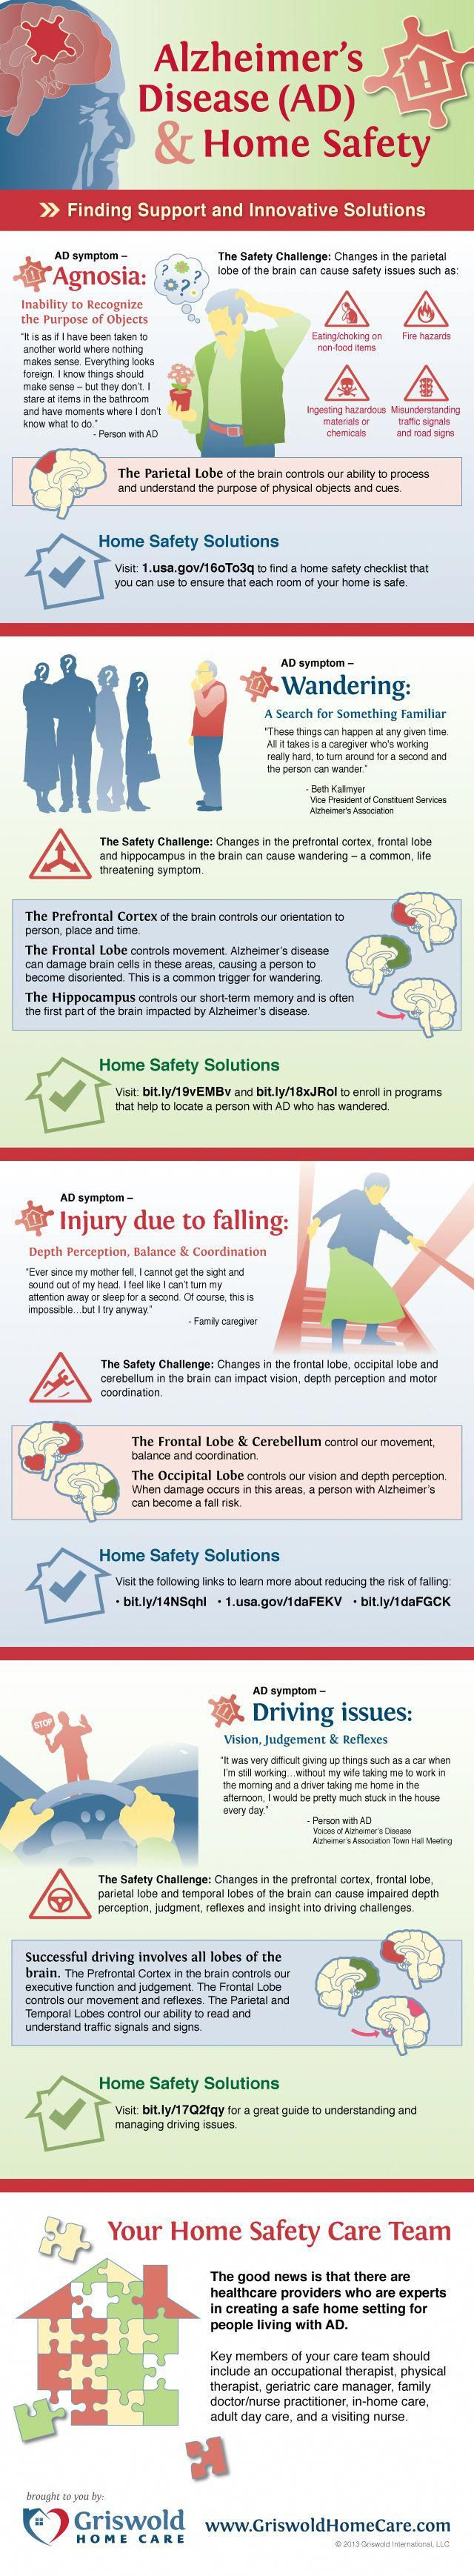 Alzheimer's Disease and Home Safety Infographic #HomeSecuritySystems